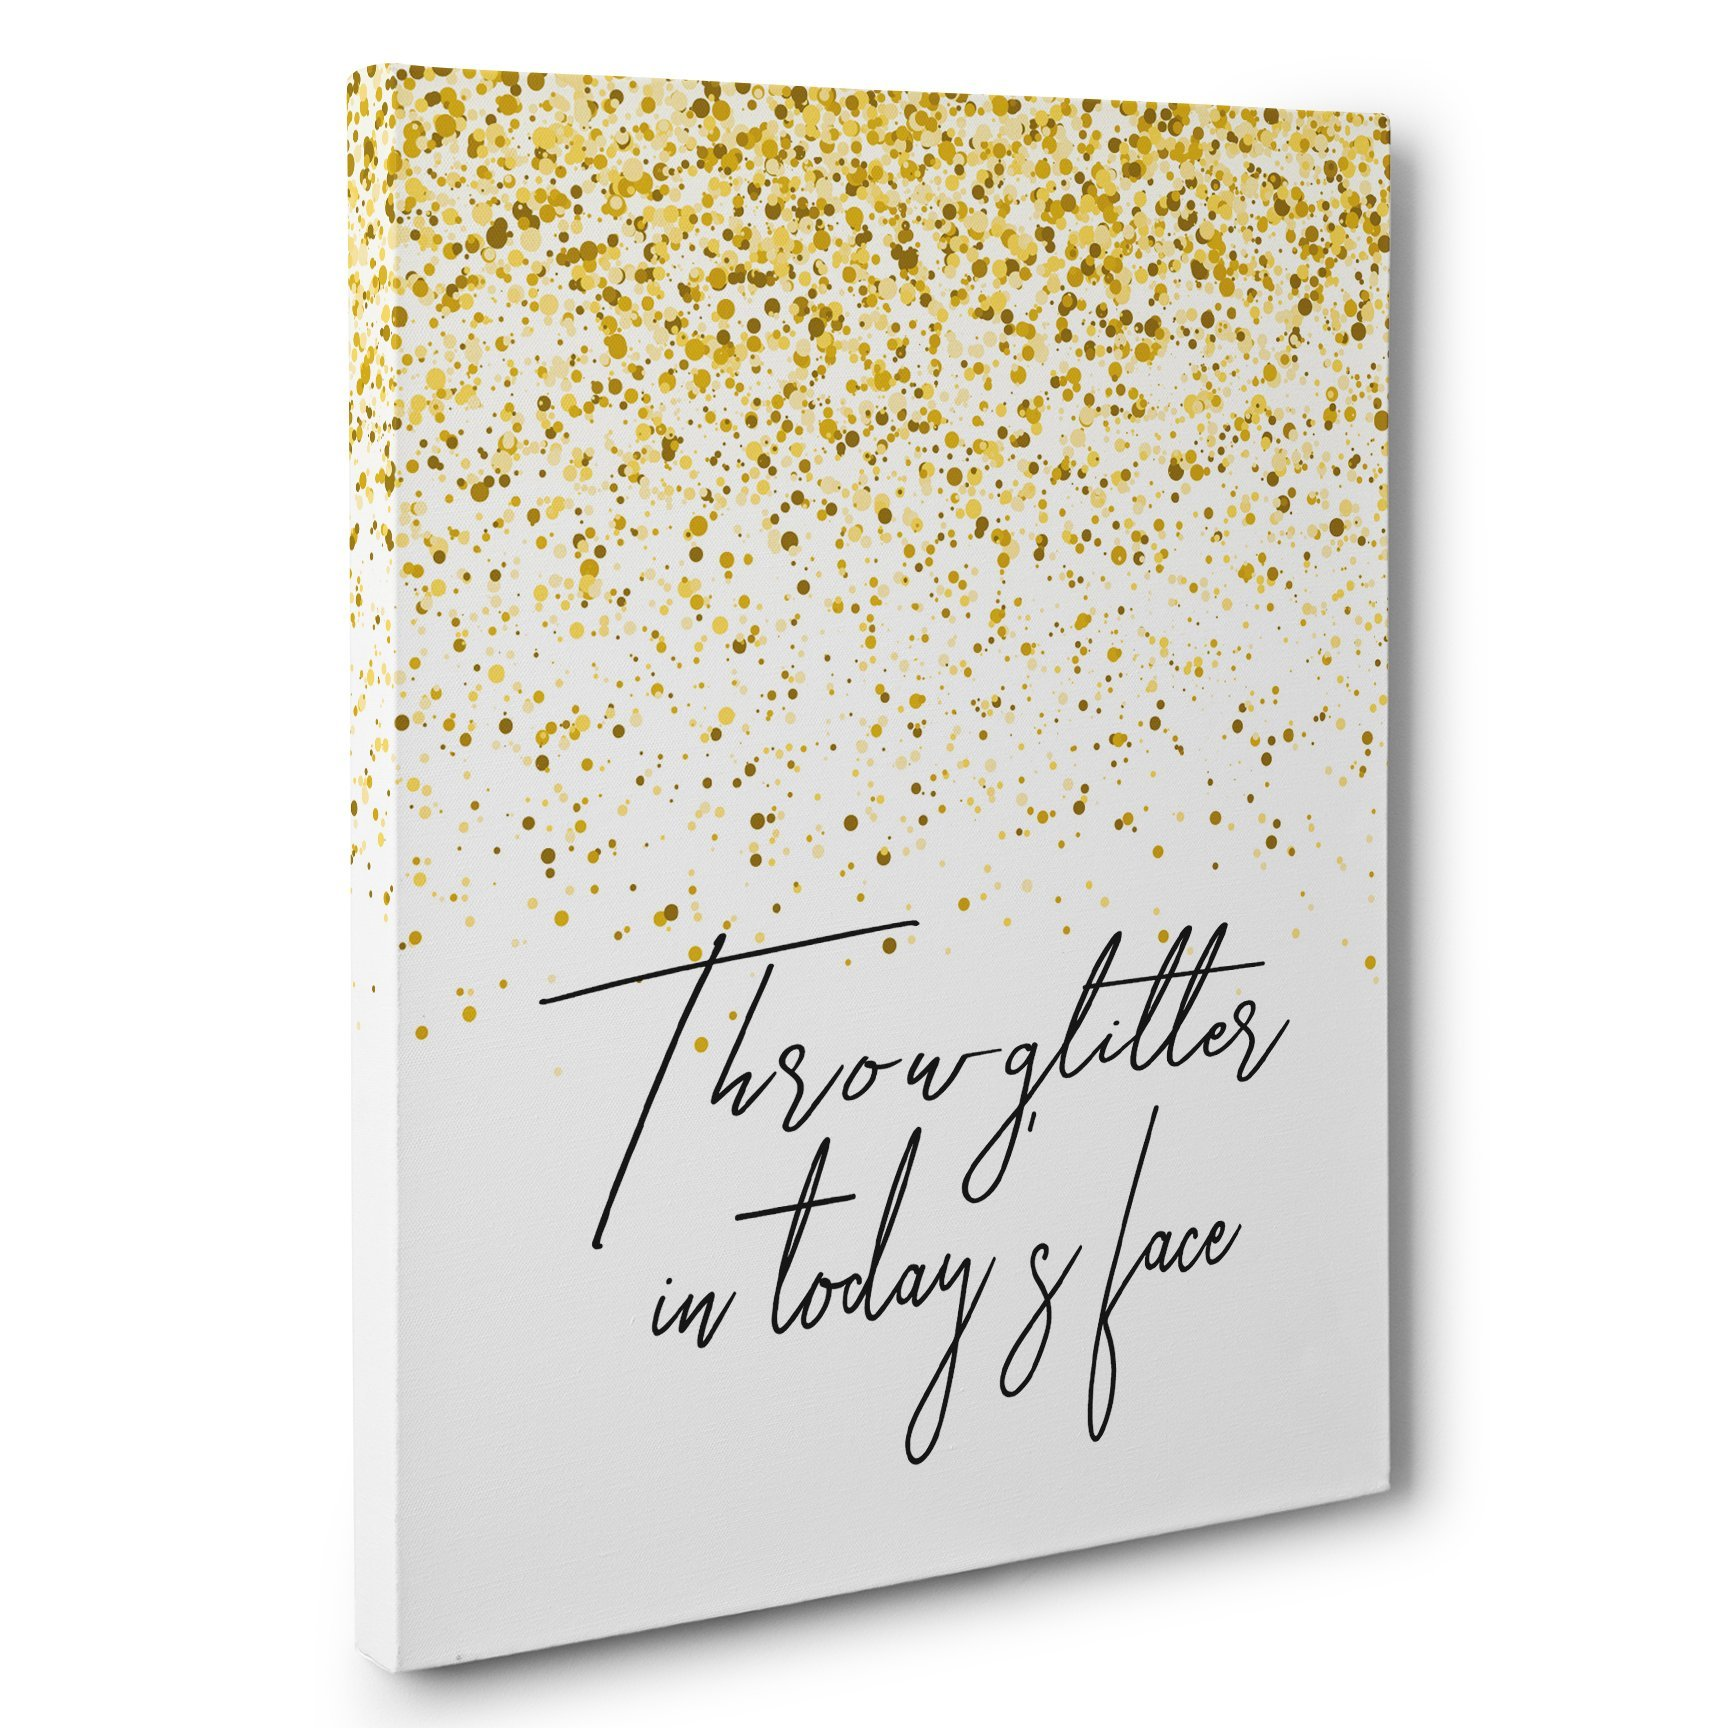 Throw Glitter In Today's Face Motivational Canvas Wall Art